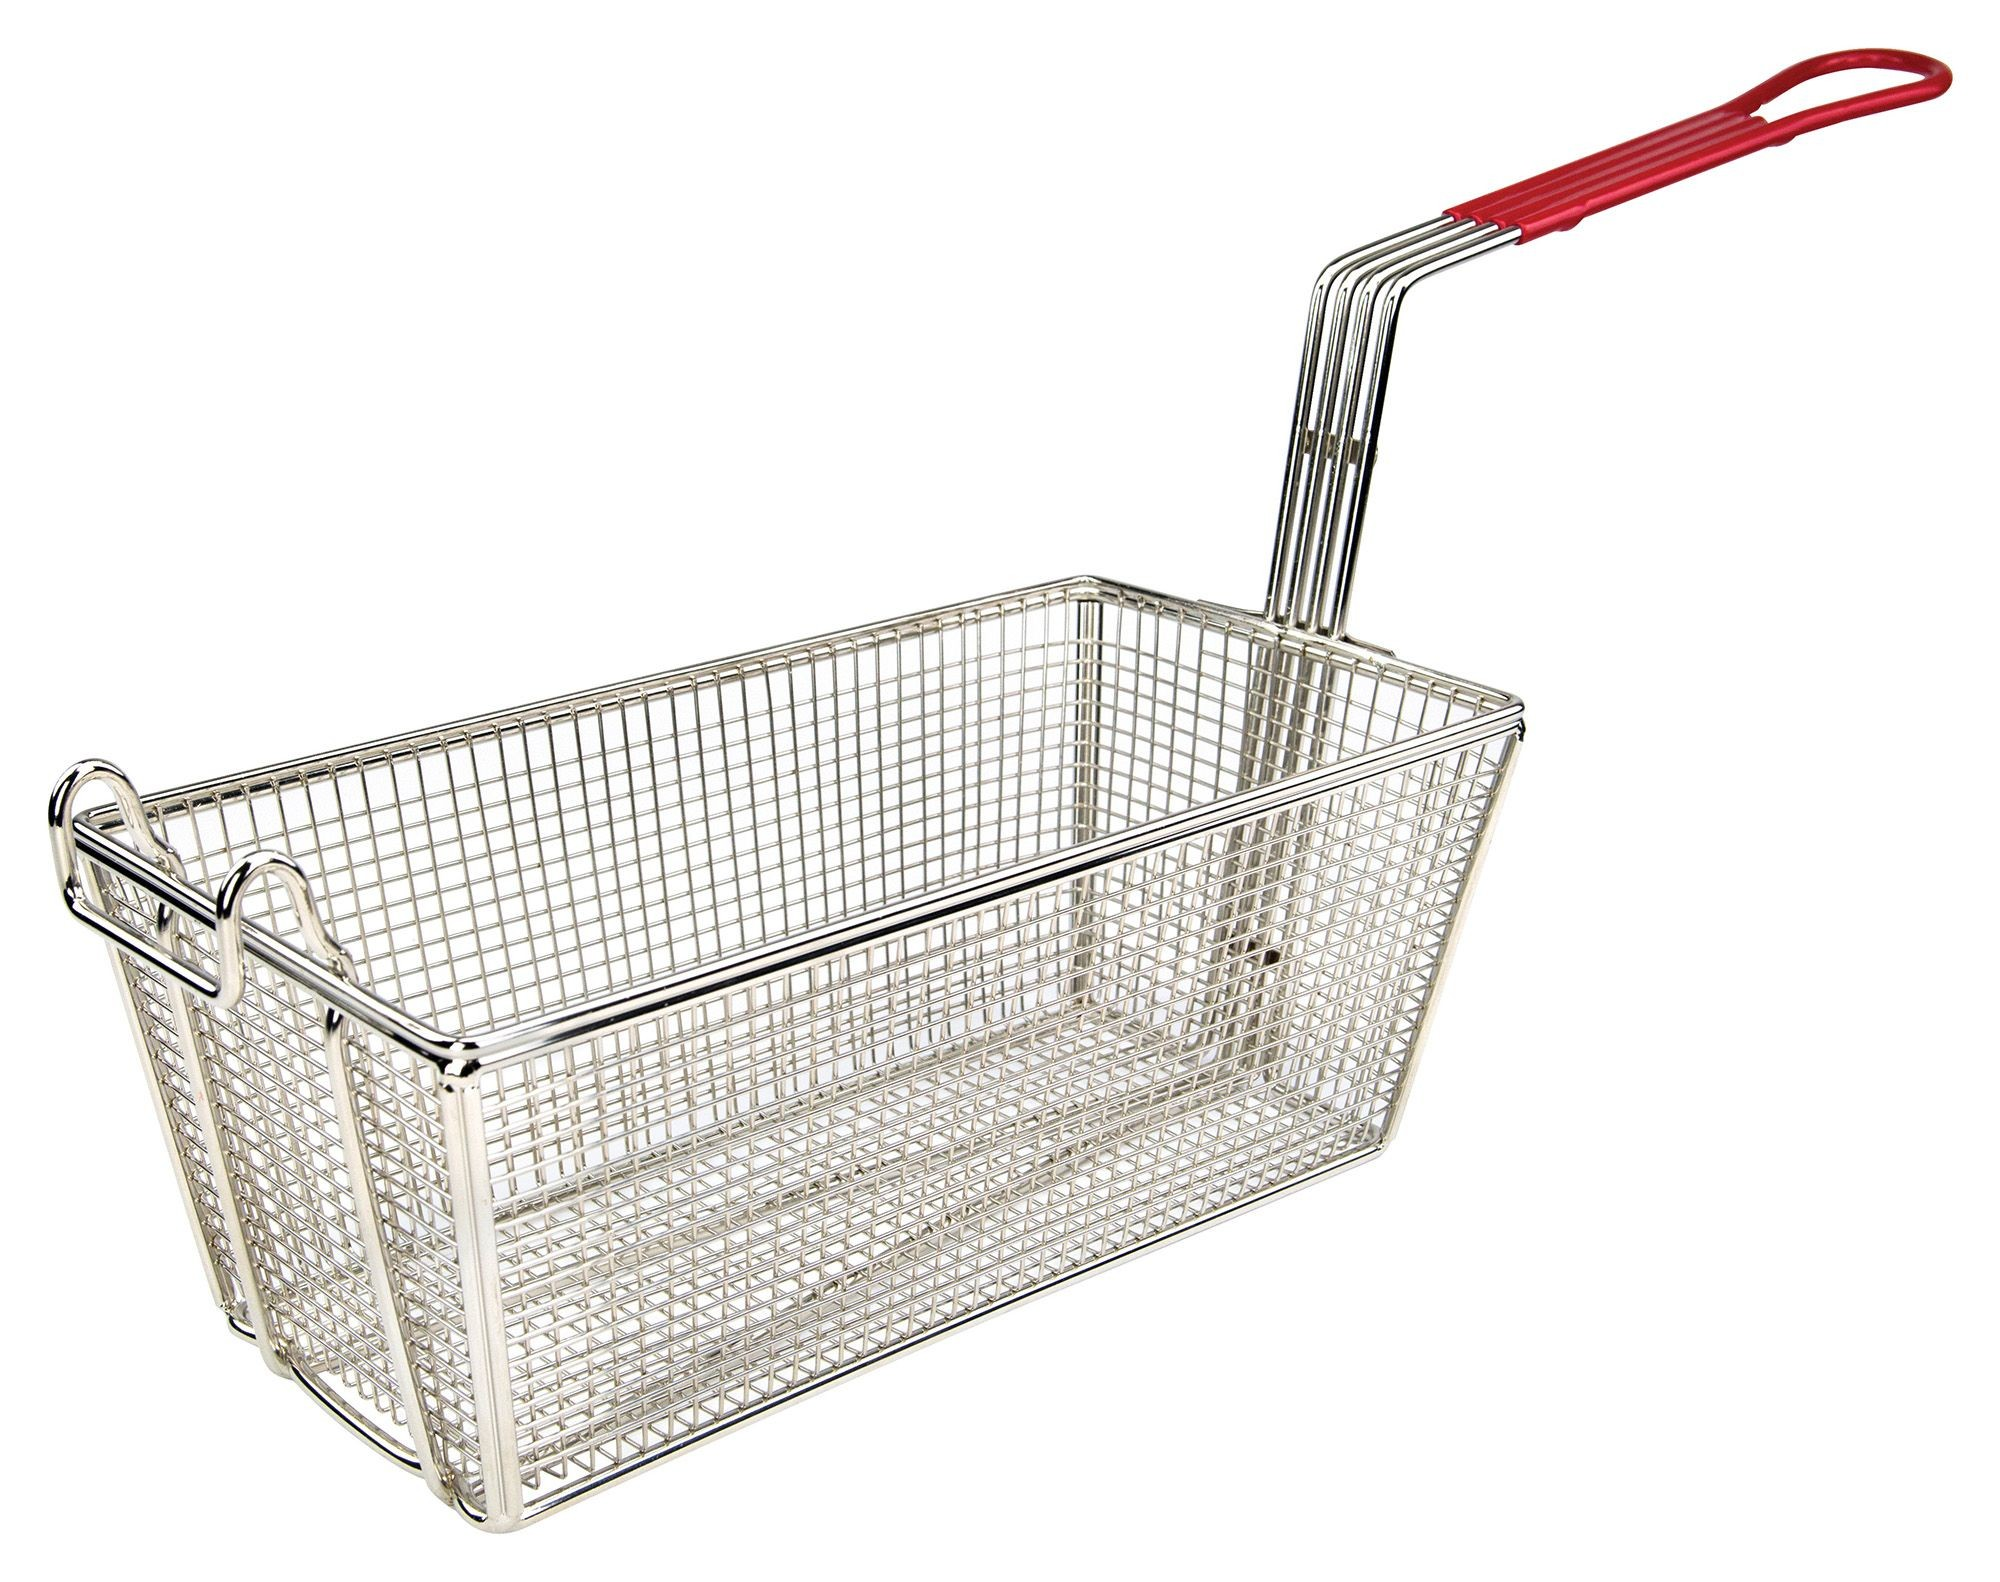 "Winco FB-25 Fry Basket, Red Handle 12-7/8"" x 6-1/2"" x 5-3/8"""